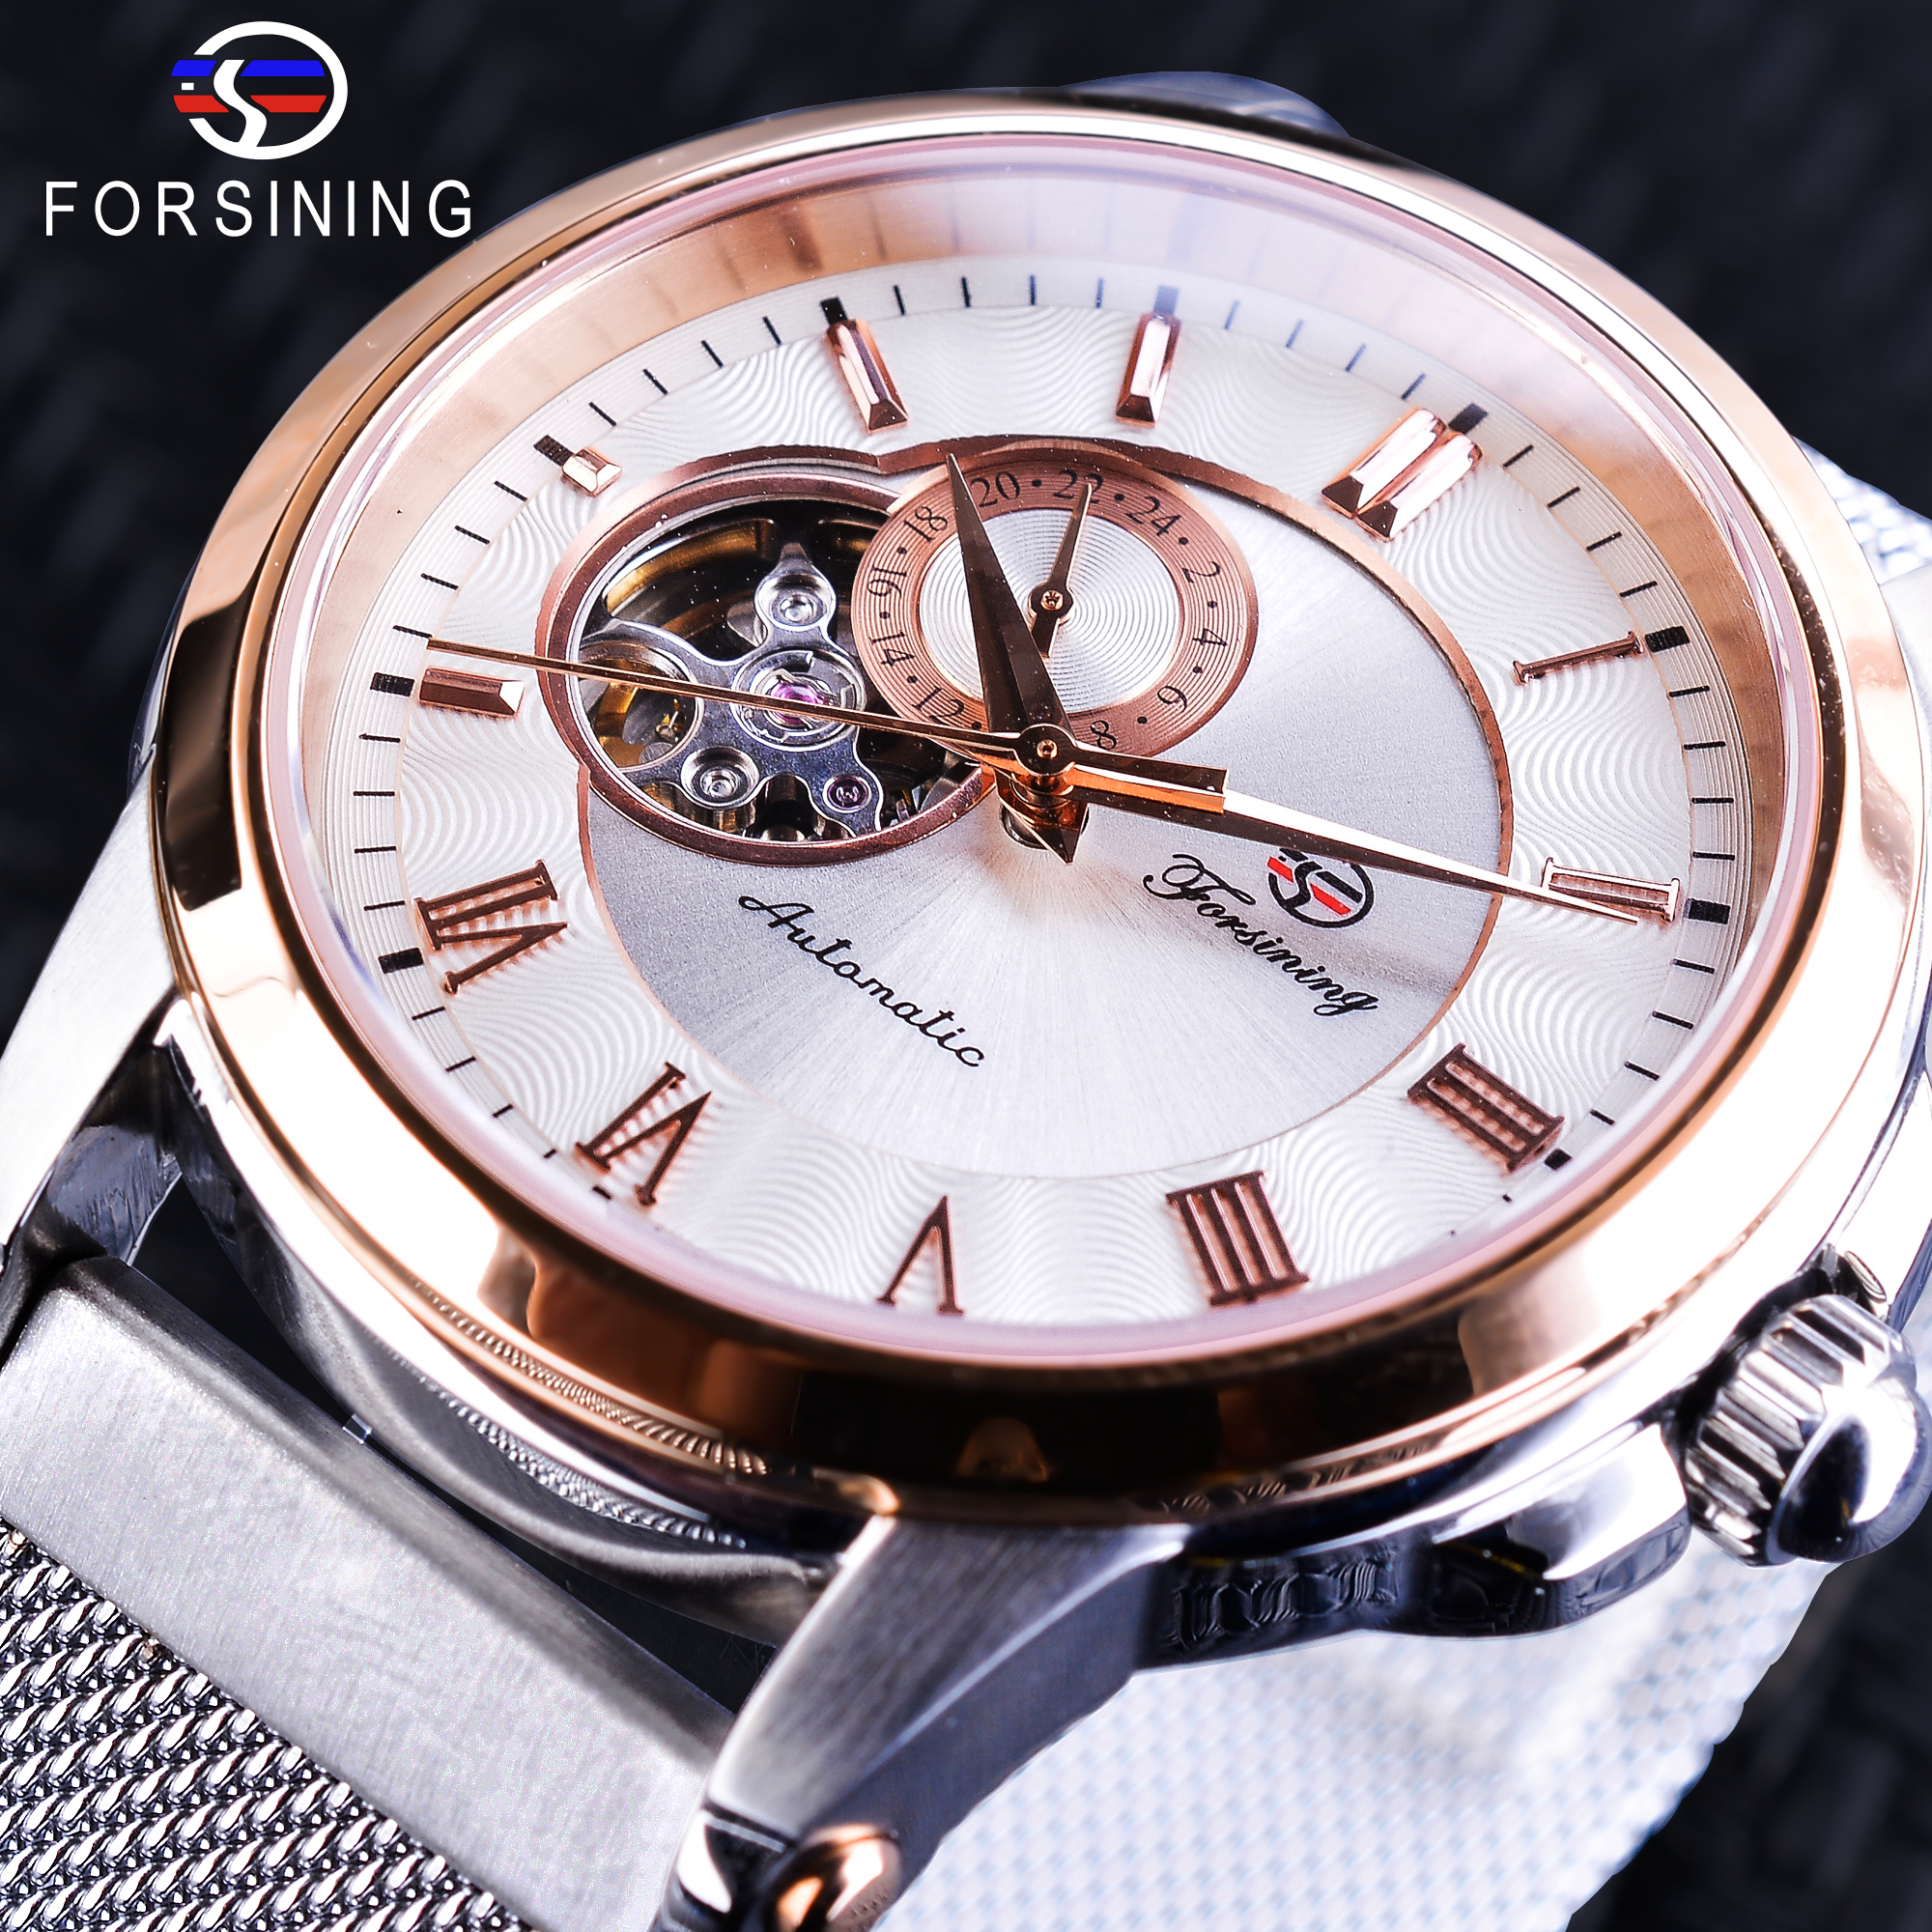 Forsining Mechanical Watches Luxury Rose Gold Case Silver Stainless Steel Unique 24 hours display Fashion Men Automatic WatchForsining Mechanical Watches Luxury Rose Gold Case Silver Stainless Steel Unique 24 hours display Fashion Men Automatic Watch